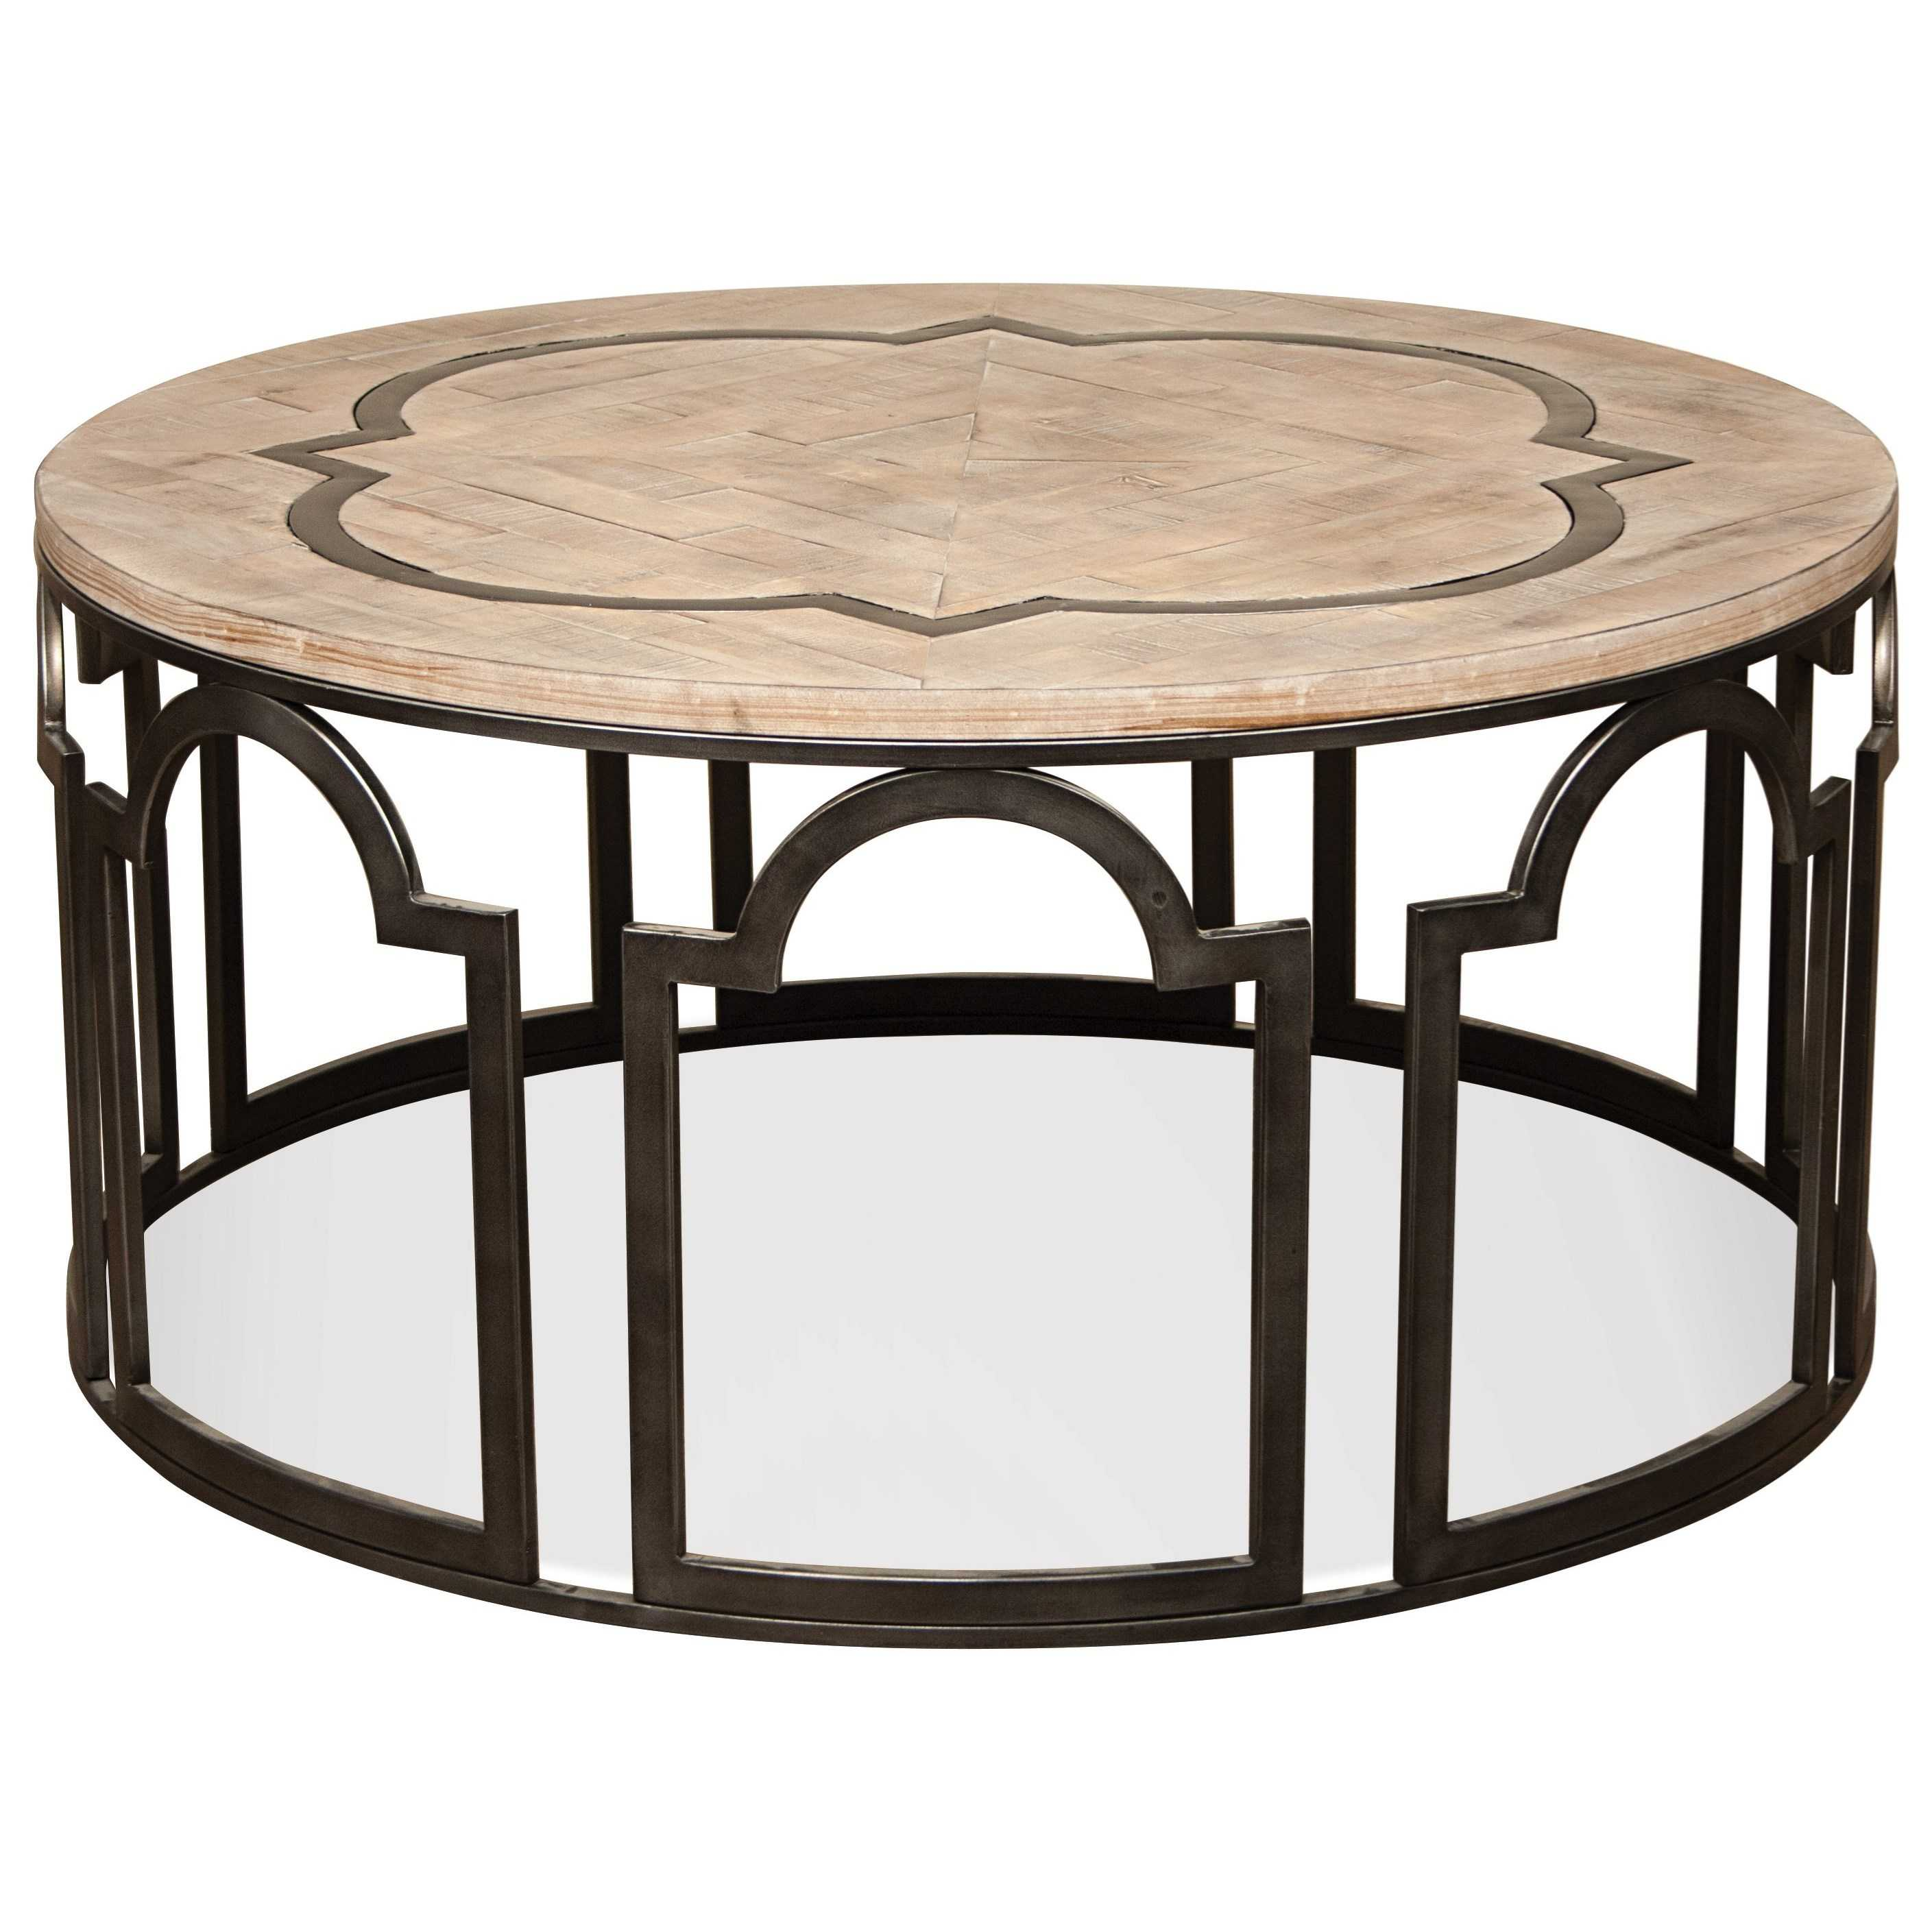 small outdoor side table tables mosaic also fabulous coffee tures square patio furniture website design sofa for space living room ers retro designer accent lamps kitchen